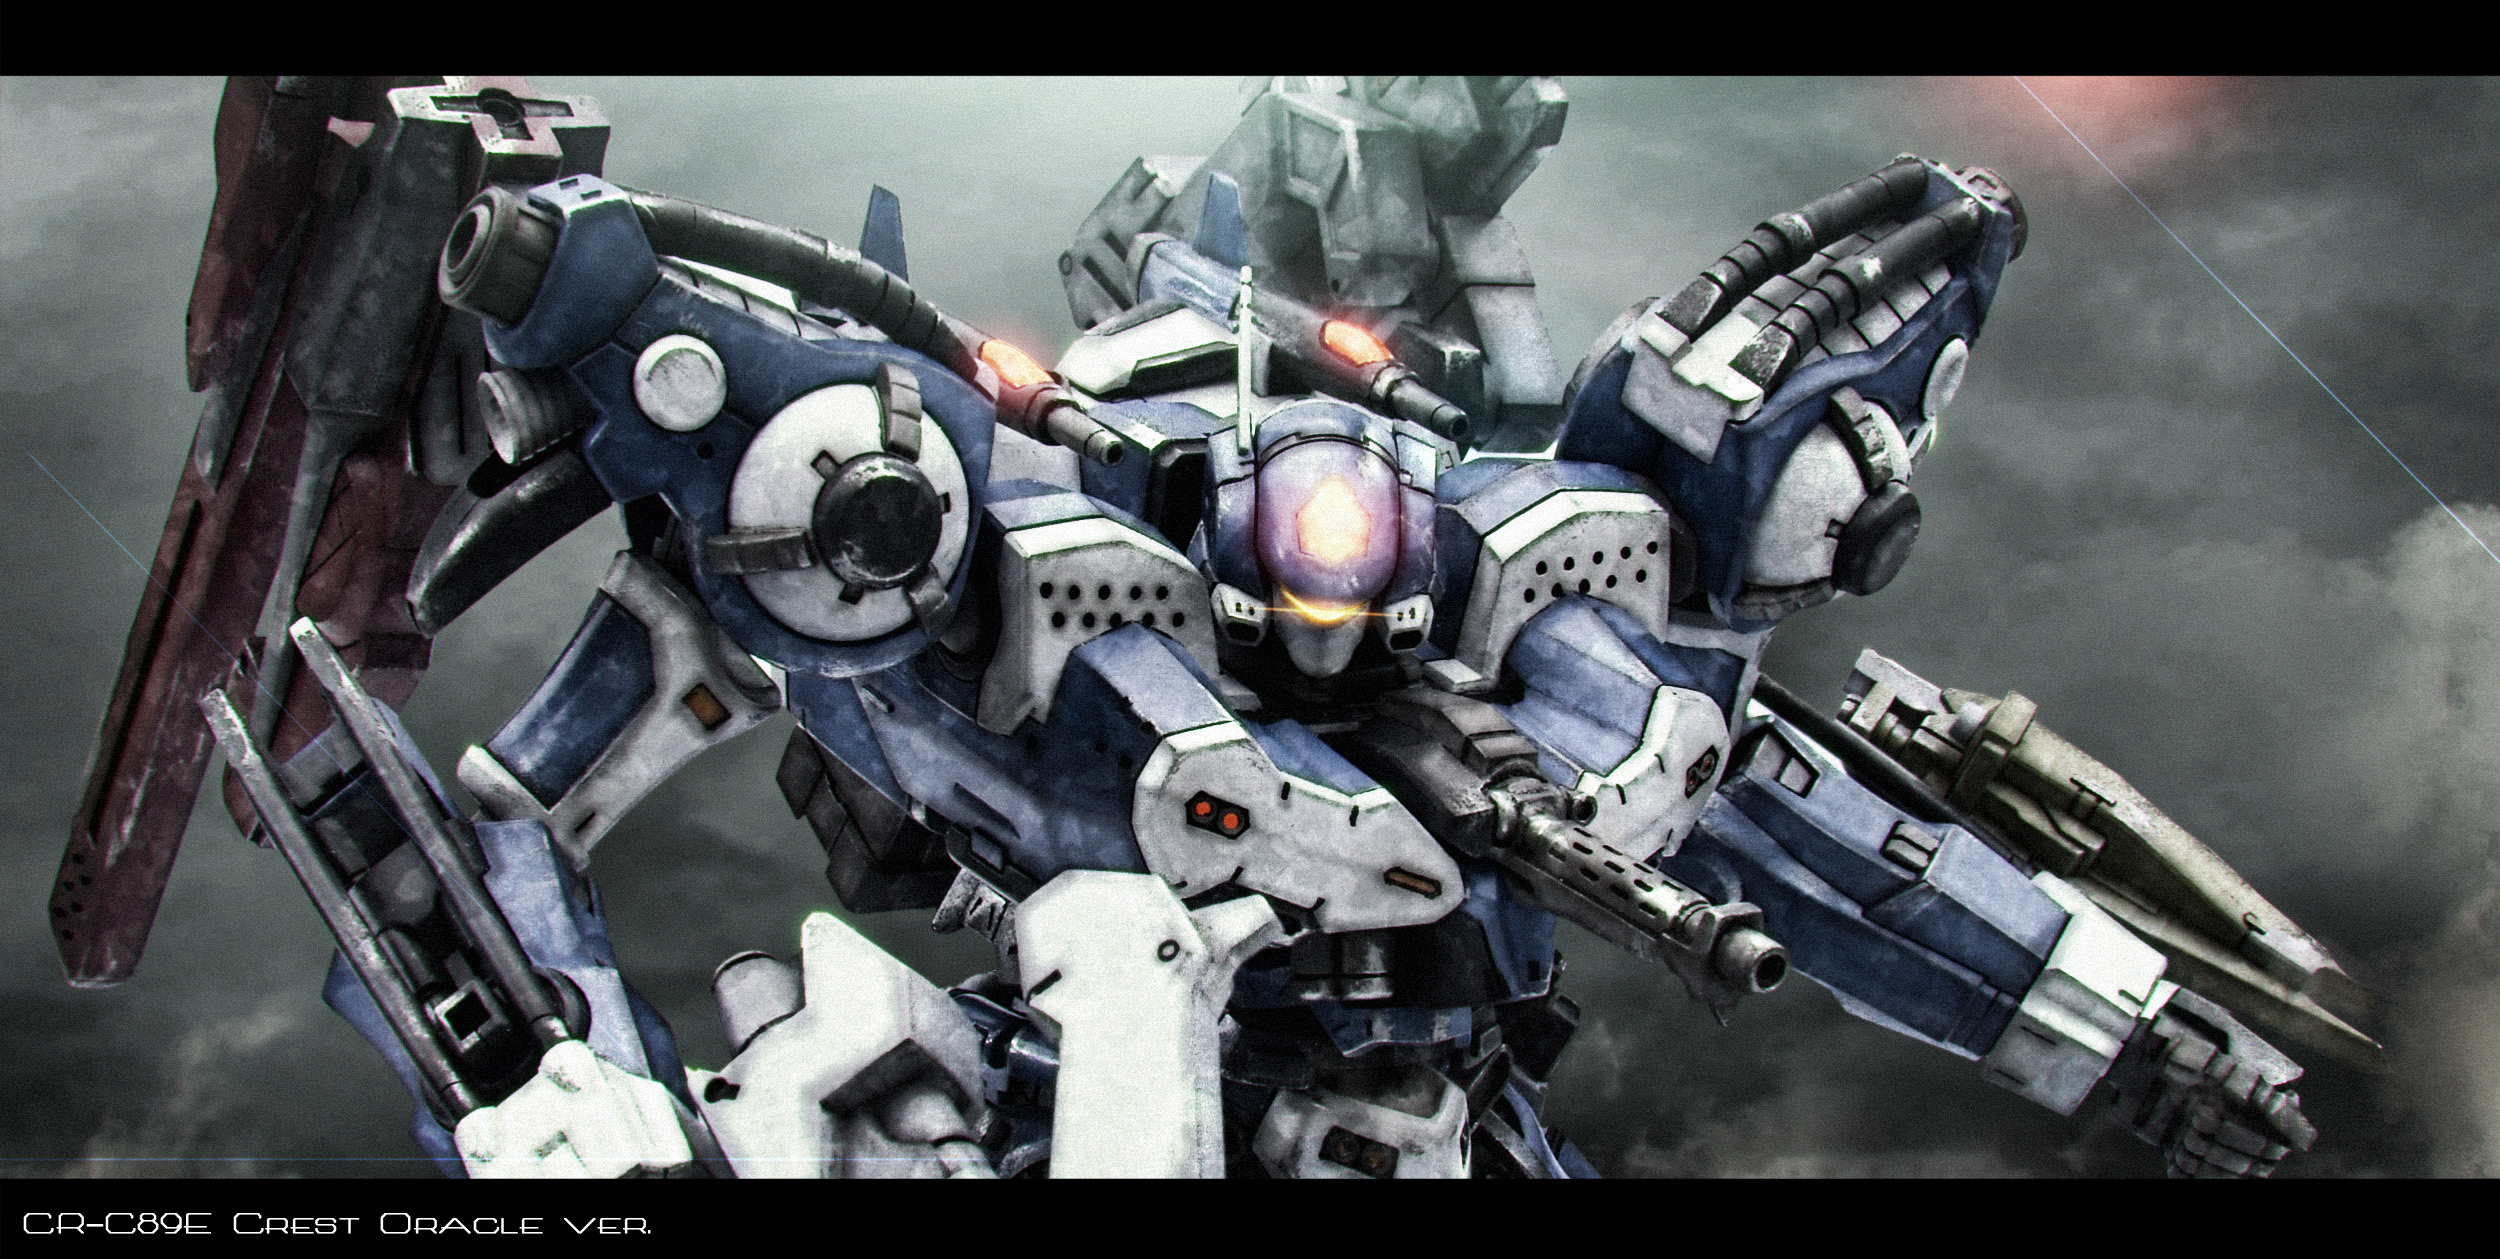 HD Armored Core Wallpapers, Live Armored Core Wallpapers (HSV668+ WP)